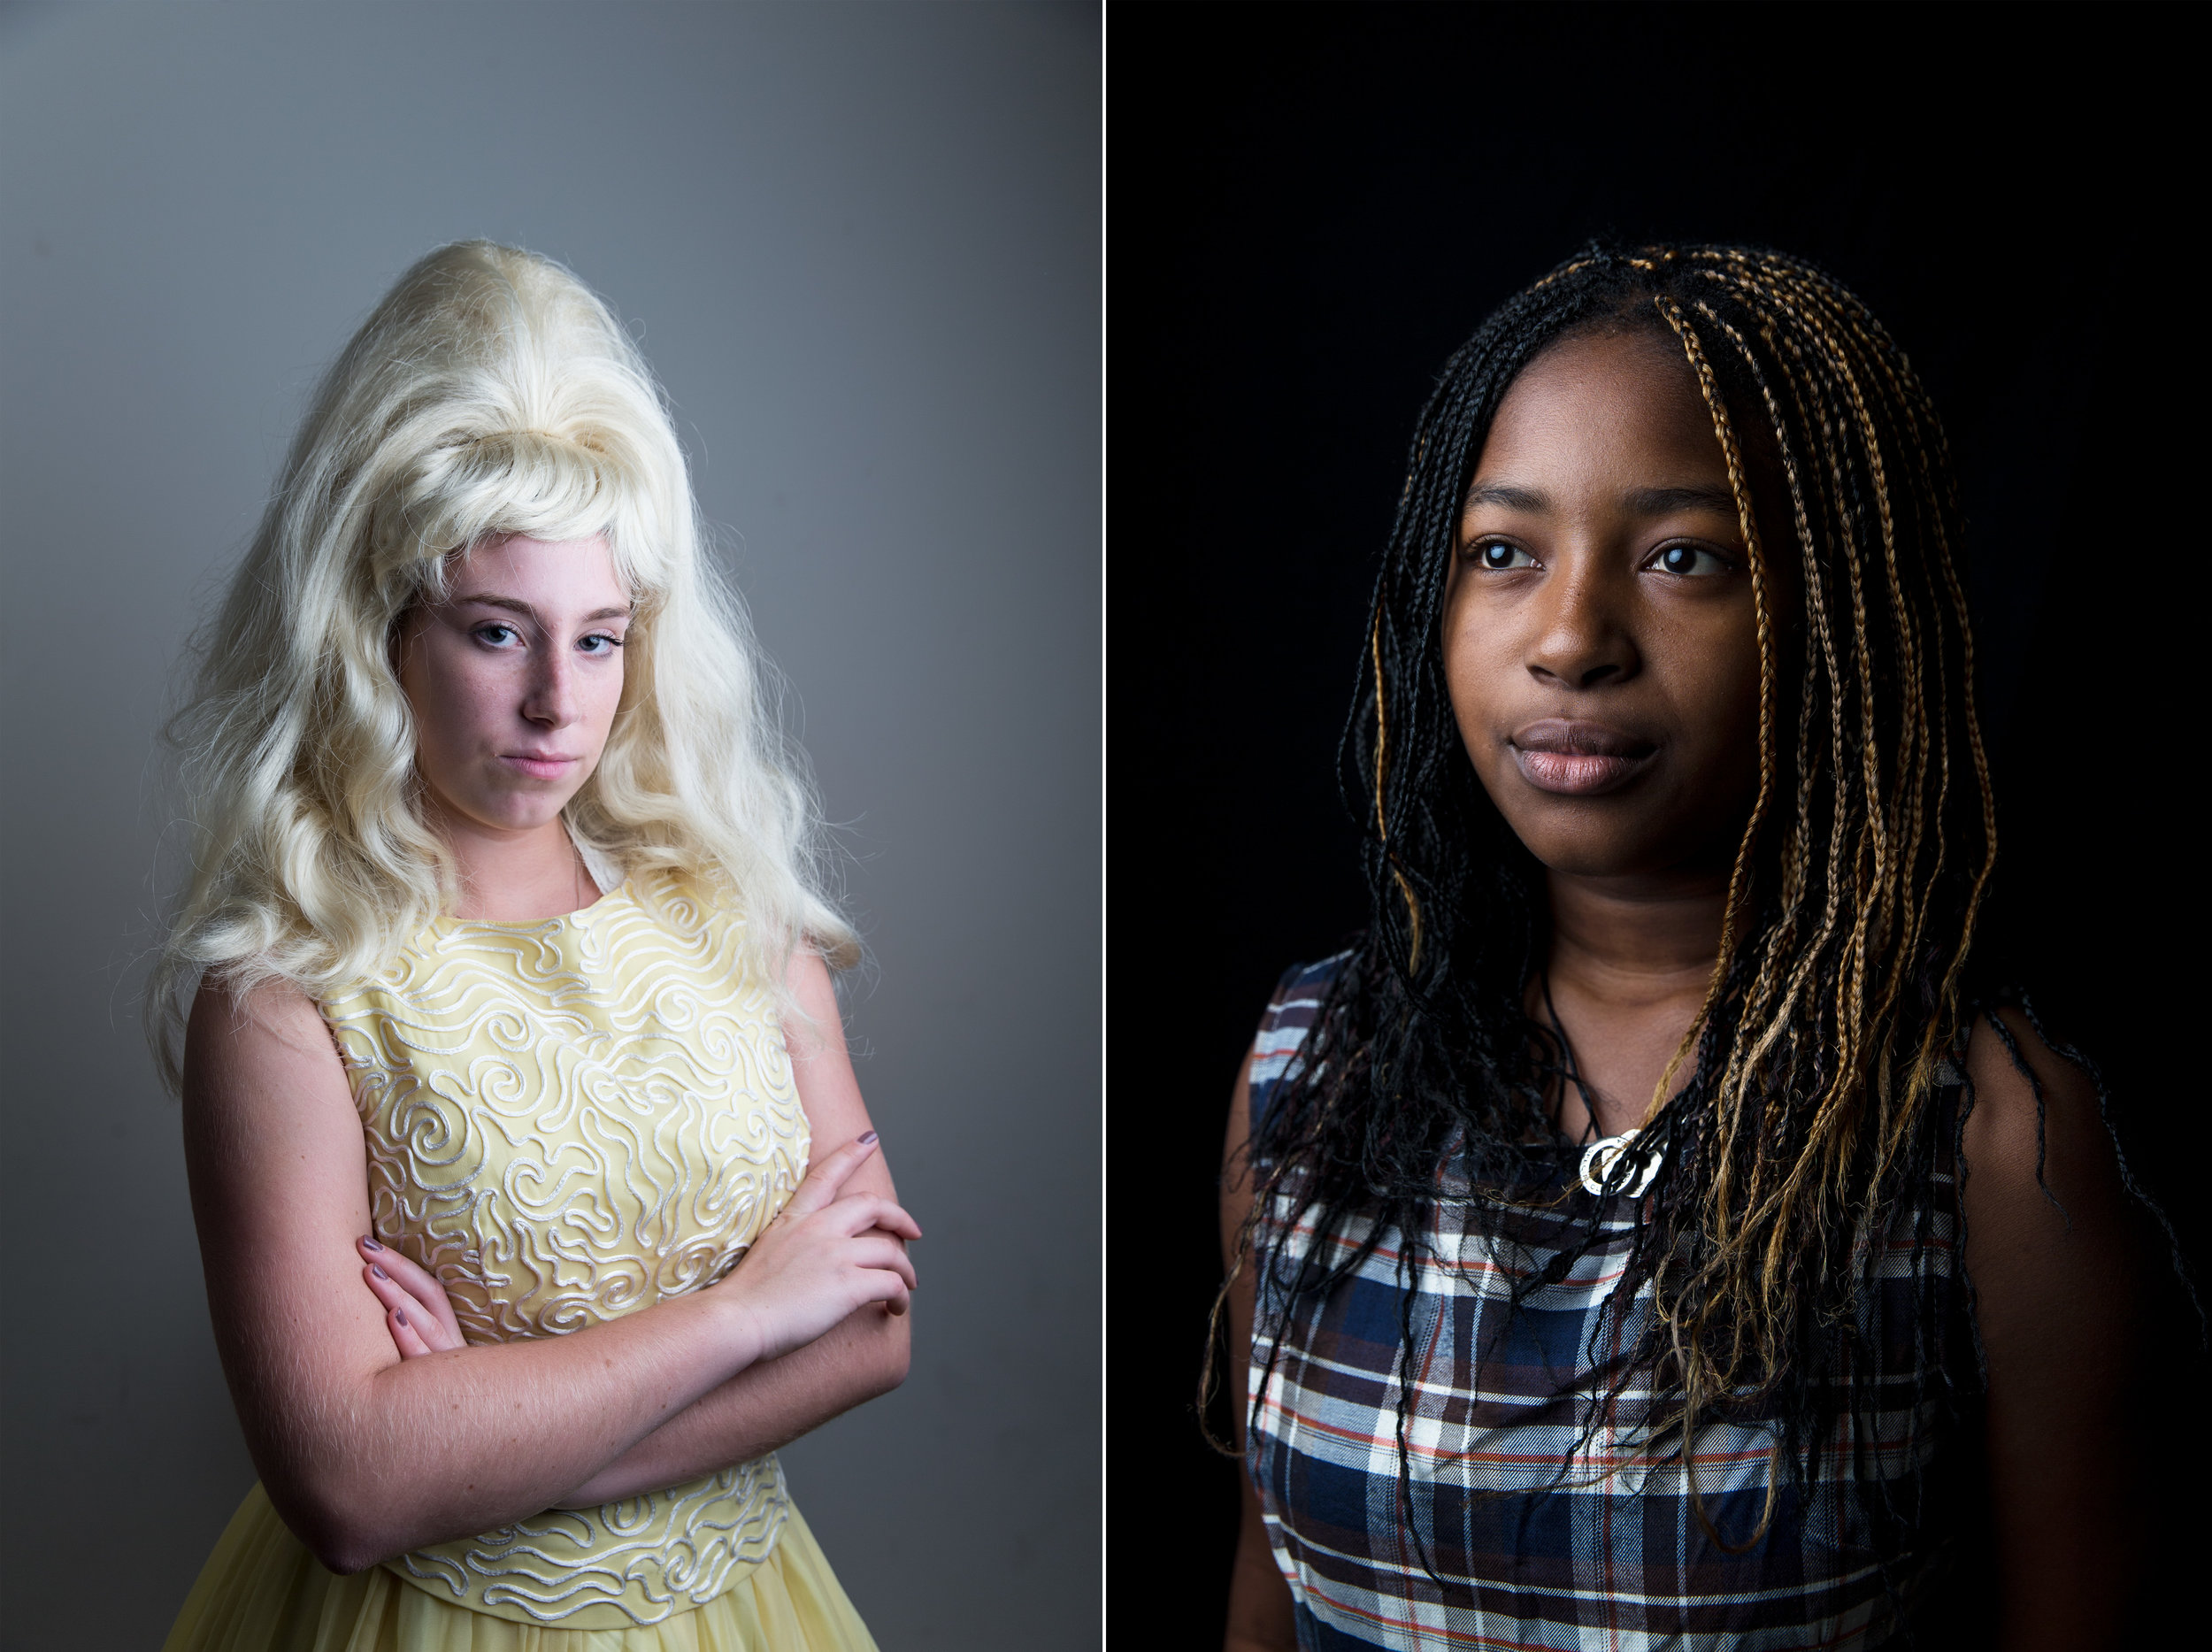 "Alexandra Igoe, 16, left, and Shirley Vilsaint, 16, dressed in character as Velma Von Tussle and Little Inez Stubbs respectively, pose for portraits during their Hairspray rehearsal on Sunday, Nov. 13, 2016. Hairspray deals with several themes, most notably race and the fact that all people should be treated equally despite differences in ethnicities, color or appearance. When asked what they've learned working alongside one another, Alexandra said, ""I've never done a show like this before, but I've never seen kids with so much dedication, talent and integrity. They just put everything into everything they do.""   ""I've learned that stereotypes are just stereotypes,"" states Shirley. ""I came in basically like, 'Oh my gosh, these white people aren't going to know how to dance.' But then a lot of them dance better than I do. So something's wrong with these stereotypes cause whoever made it up, doesn't have it right."""